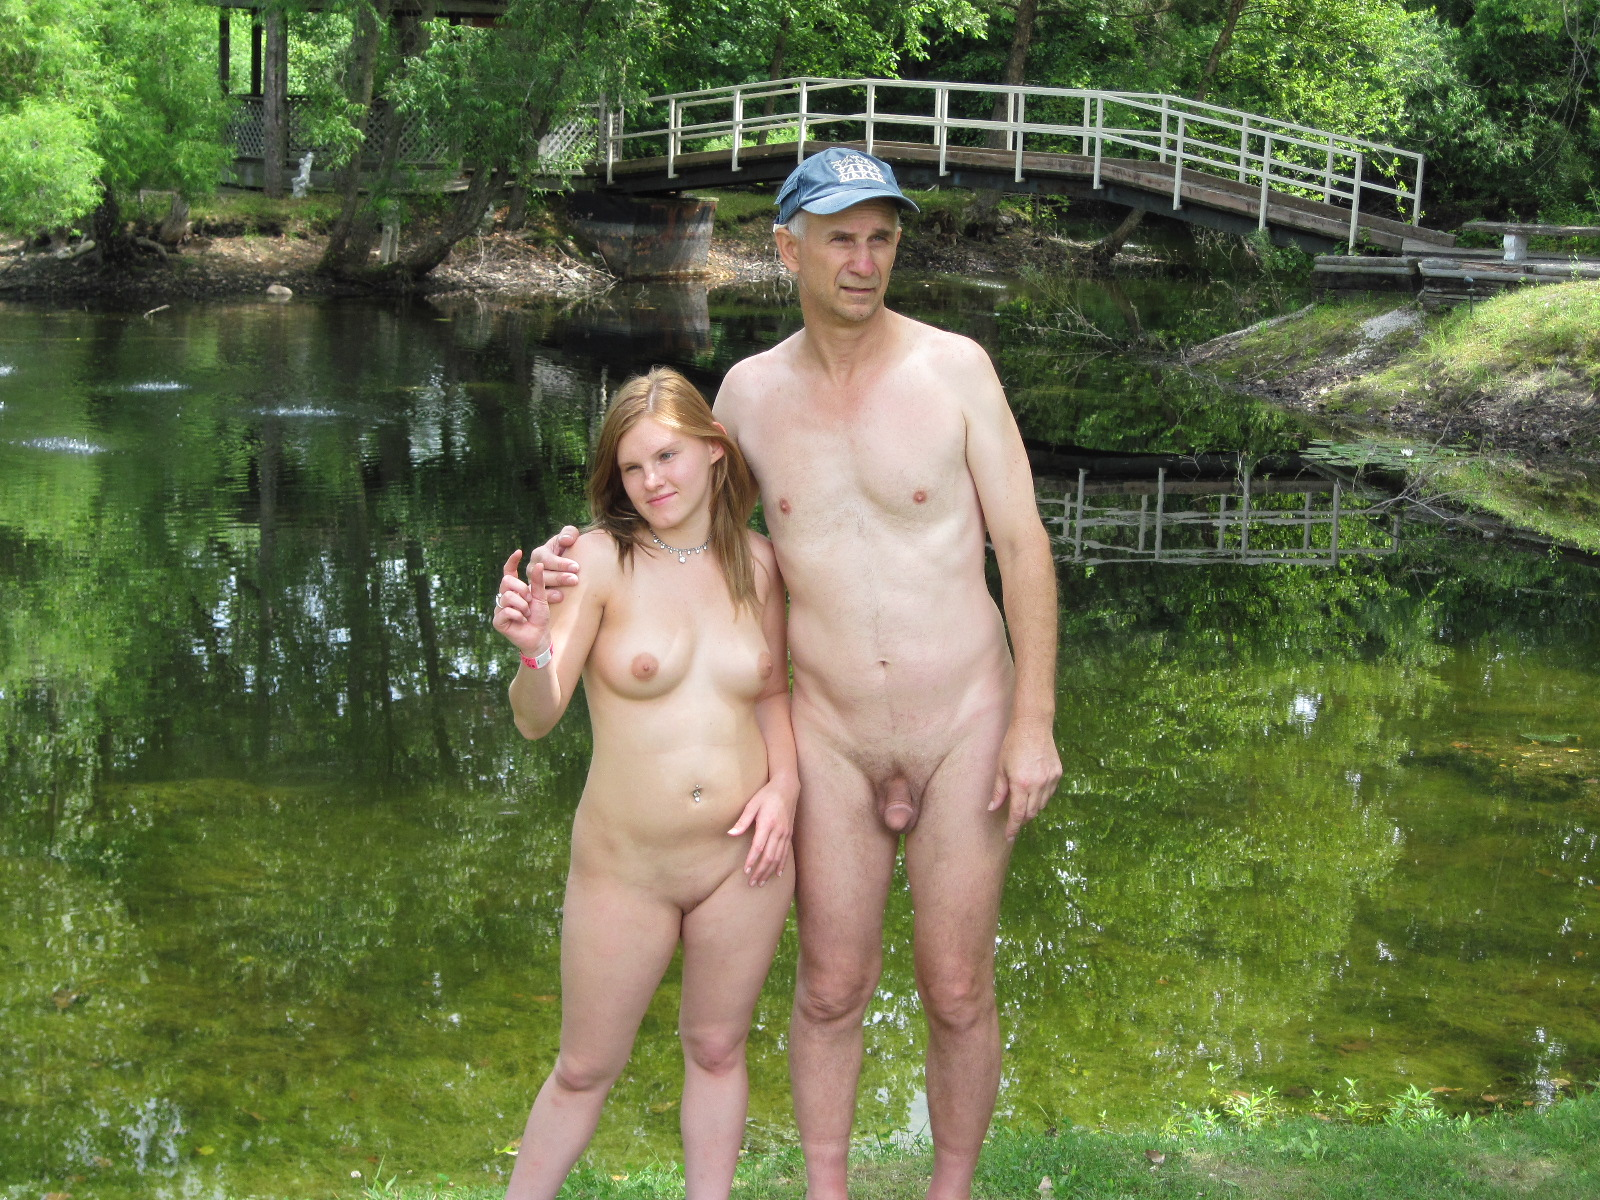 Remarkable, very Naked daughters with dad pics